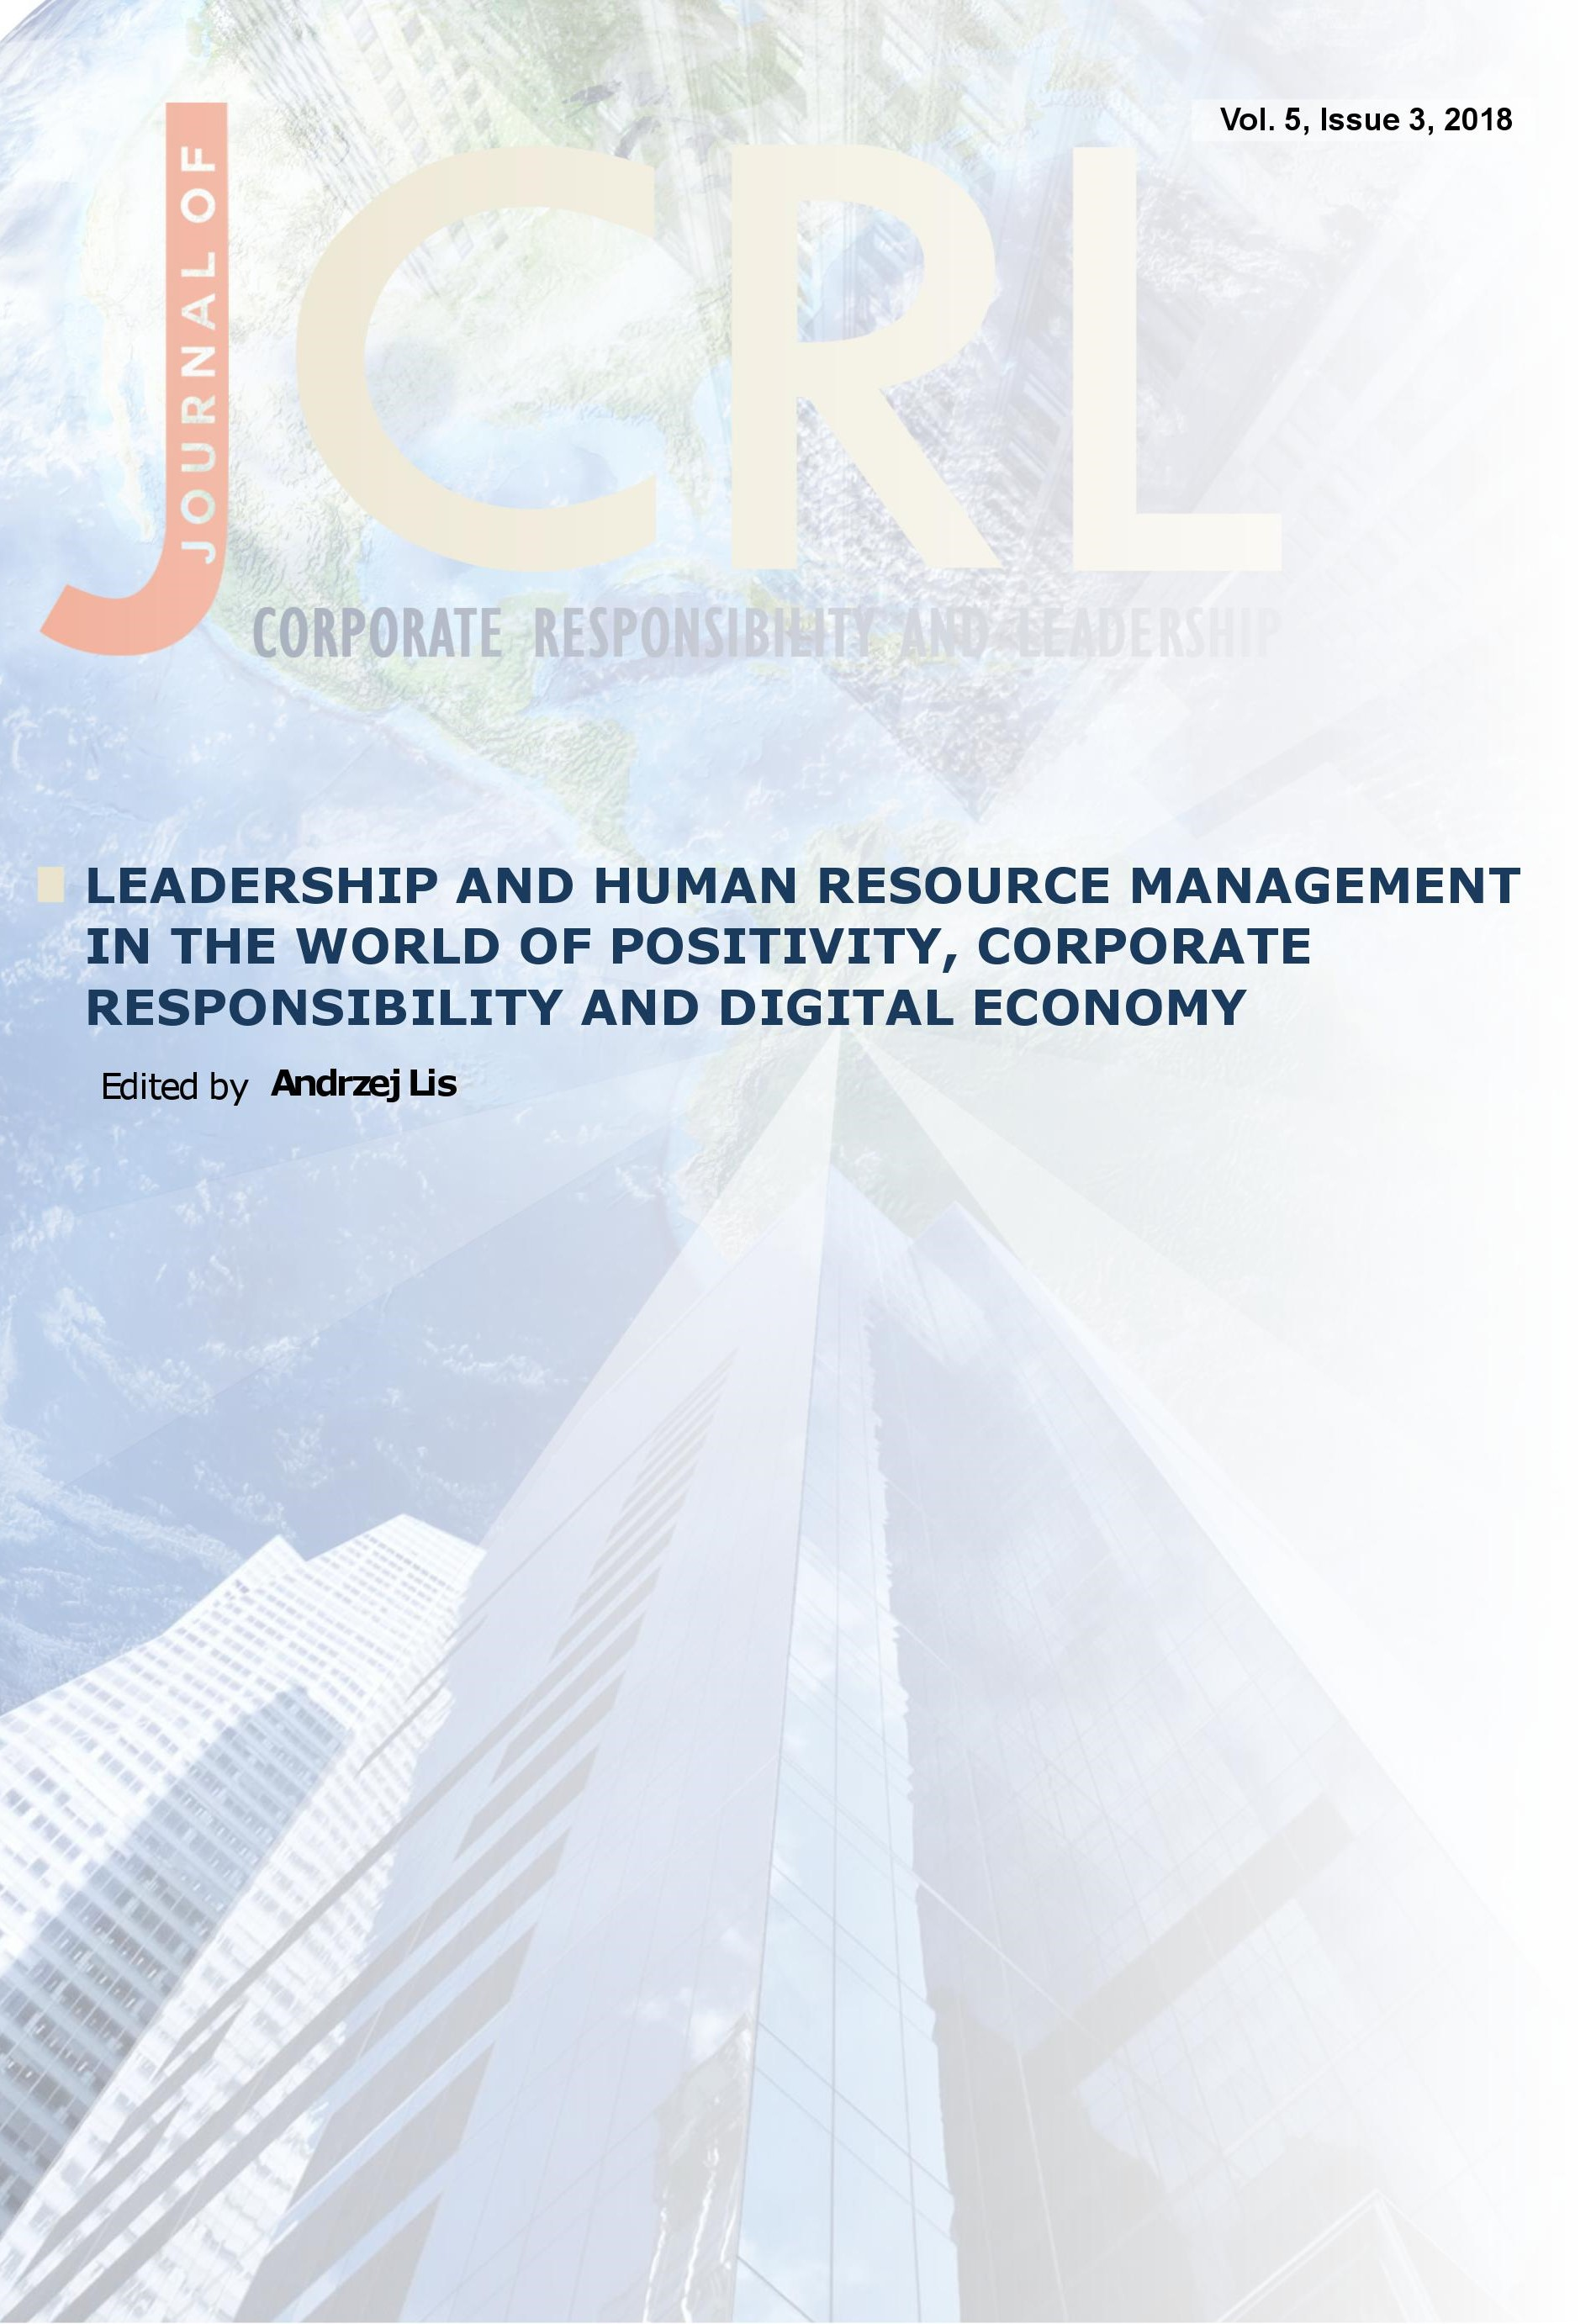 View Vol. 5 No. 3 (2018): Leadership and Human Resource Management in the World of Positivity, Corporate Responsibility and Digital Economy